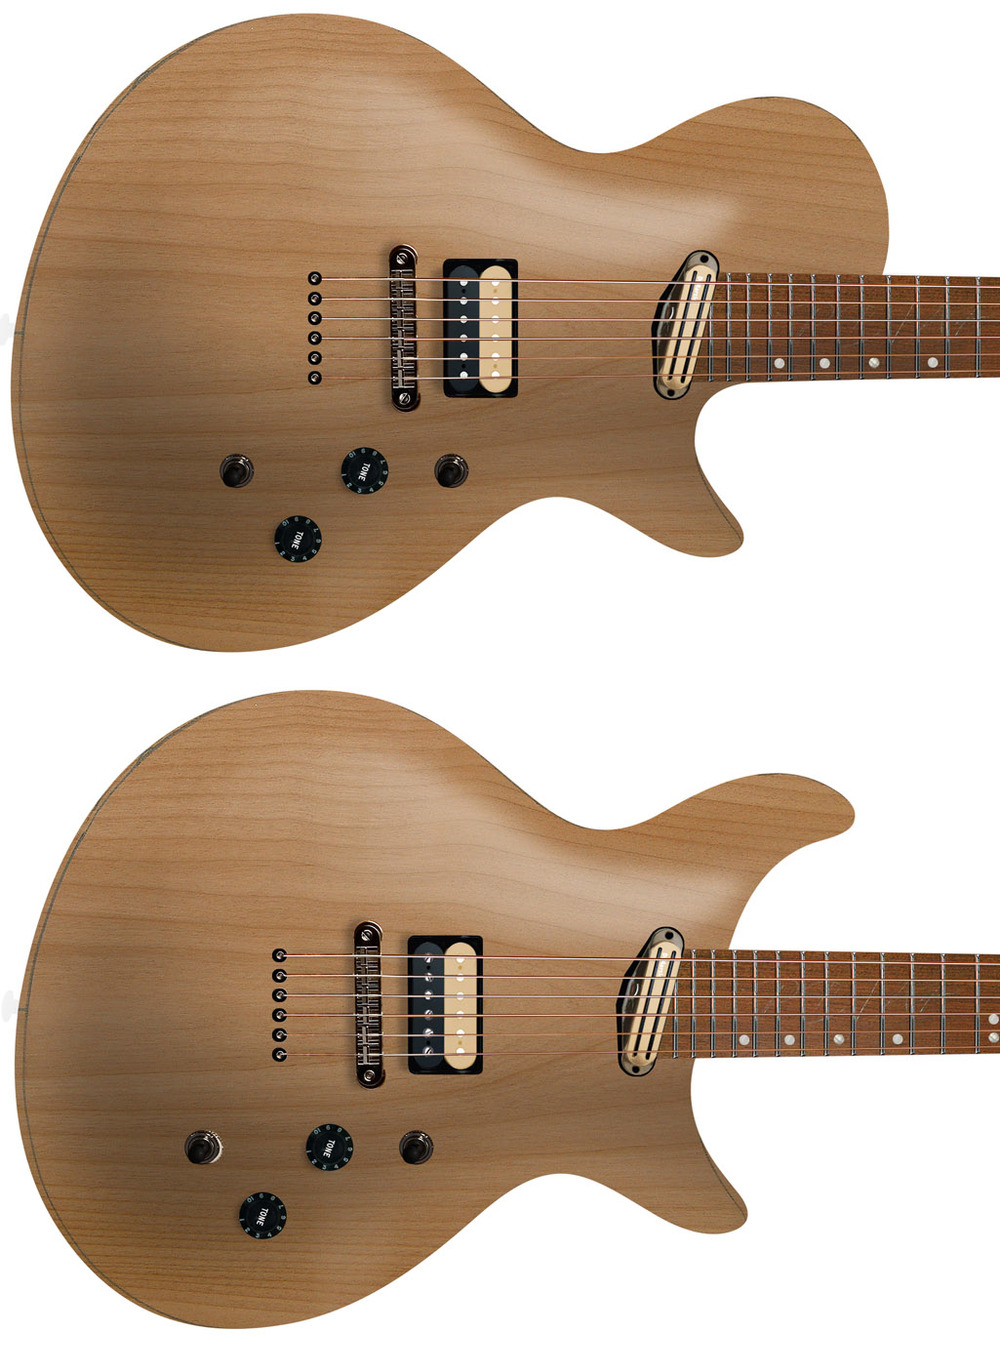 J1 Solid Alder, Single+Double cutaway